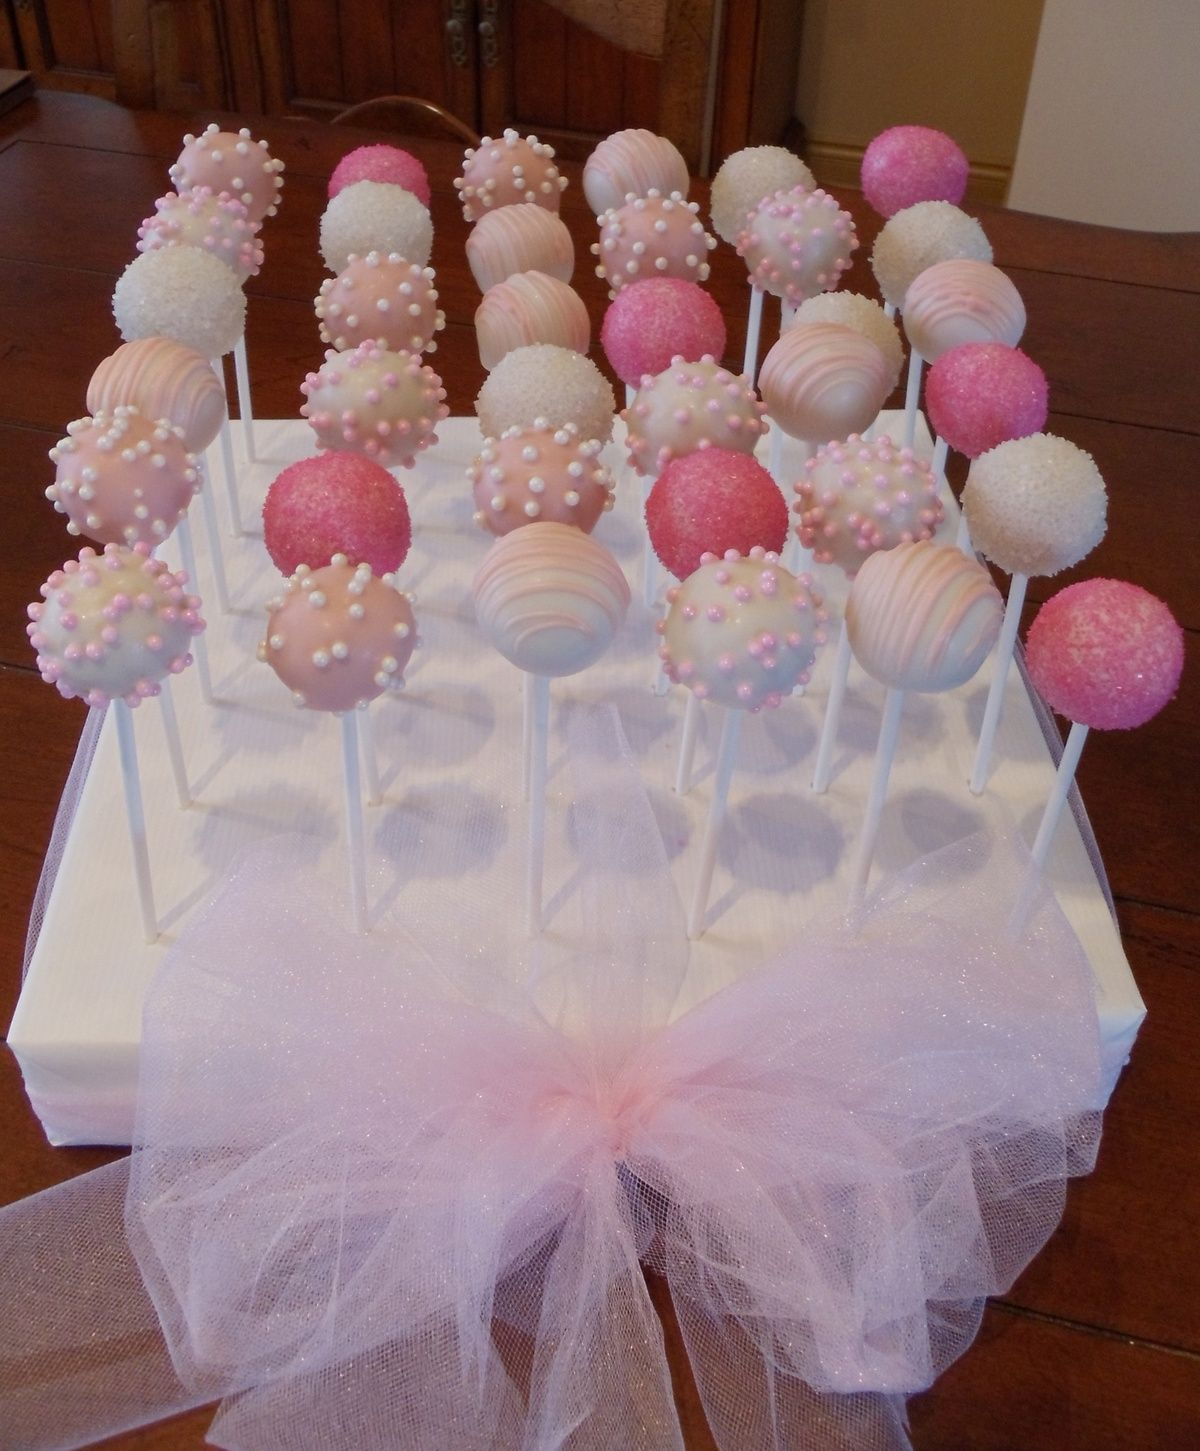 1 200 1 451 pixels cake pops pinterest cake pops. Black Bedroom Furniture Sets. Home Design Ideas